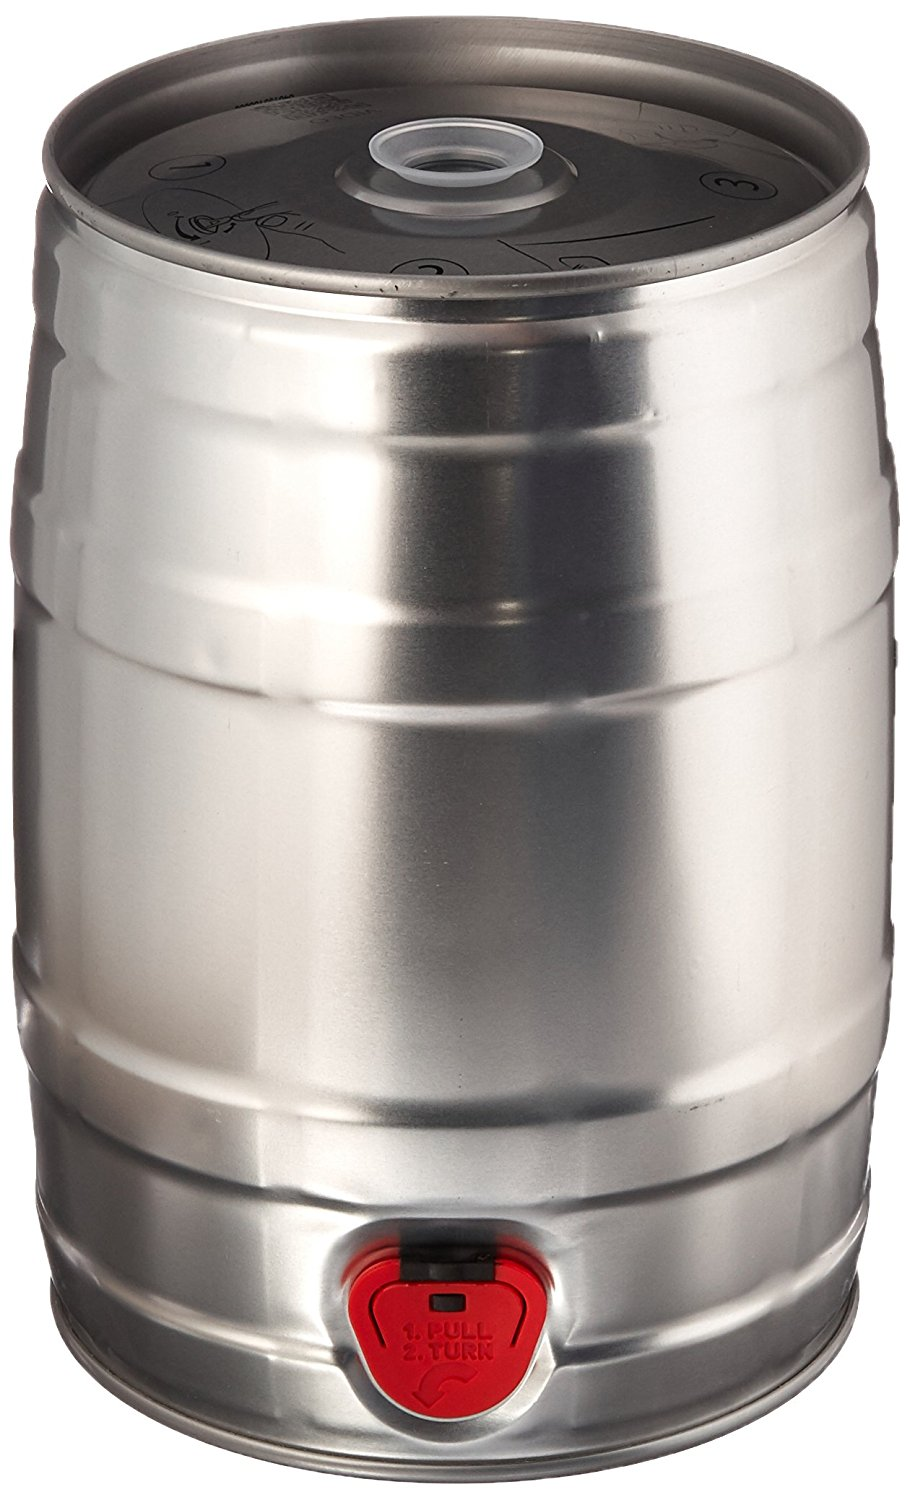 Mini Kegs A Portable And Compact Way To Enjoy Beer